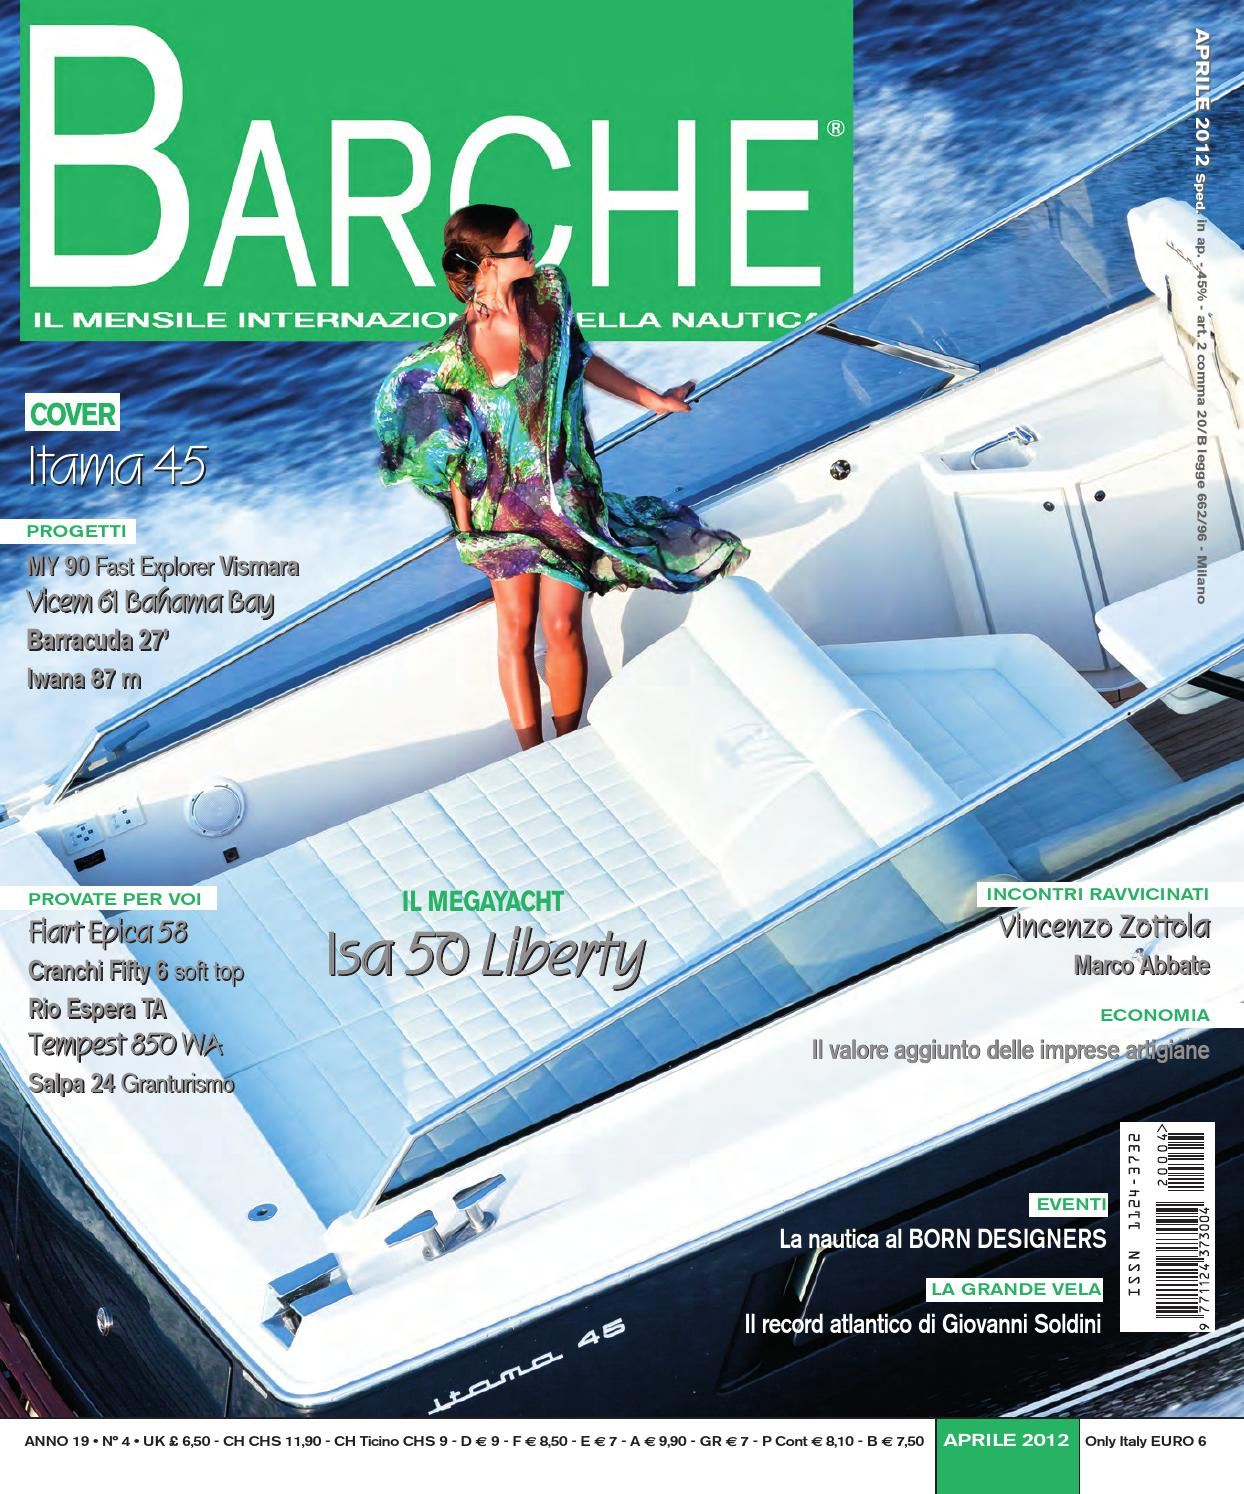 Barche aprile 2012 by INTERNATIONAL SEA PRESS SRL - BARCHE - issuu 3c92d979961